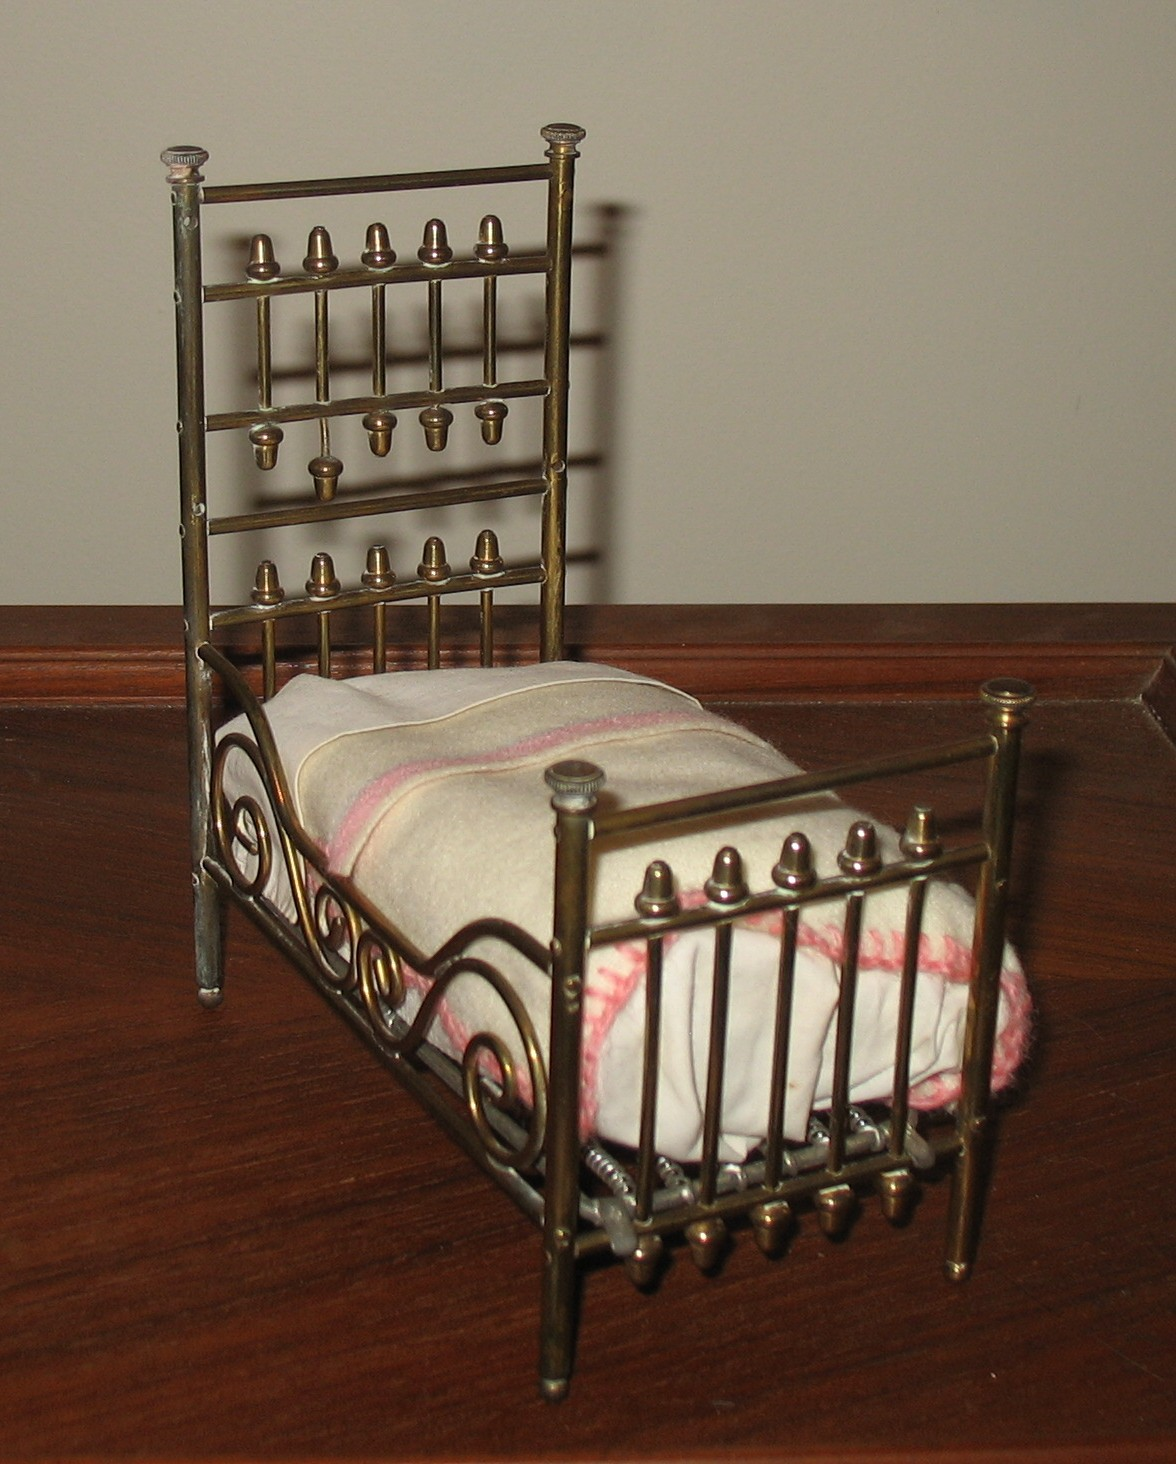 A brass bed with high head